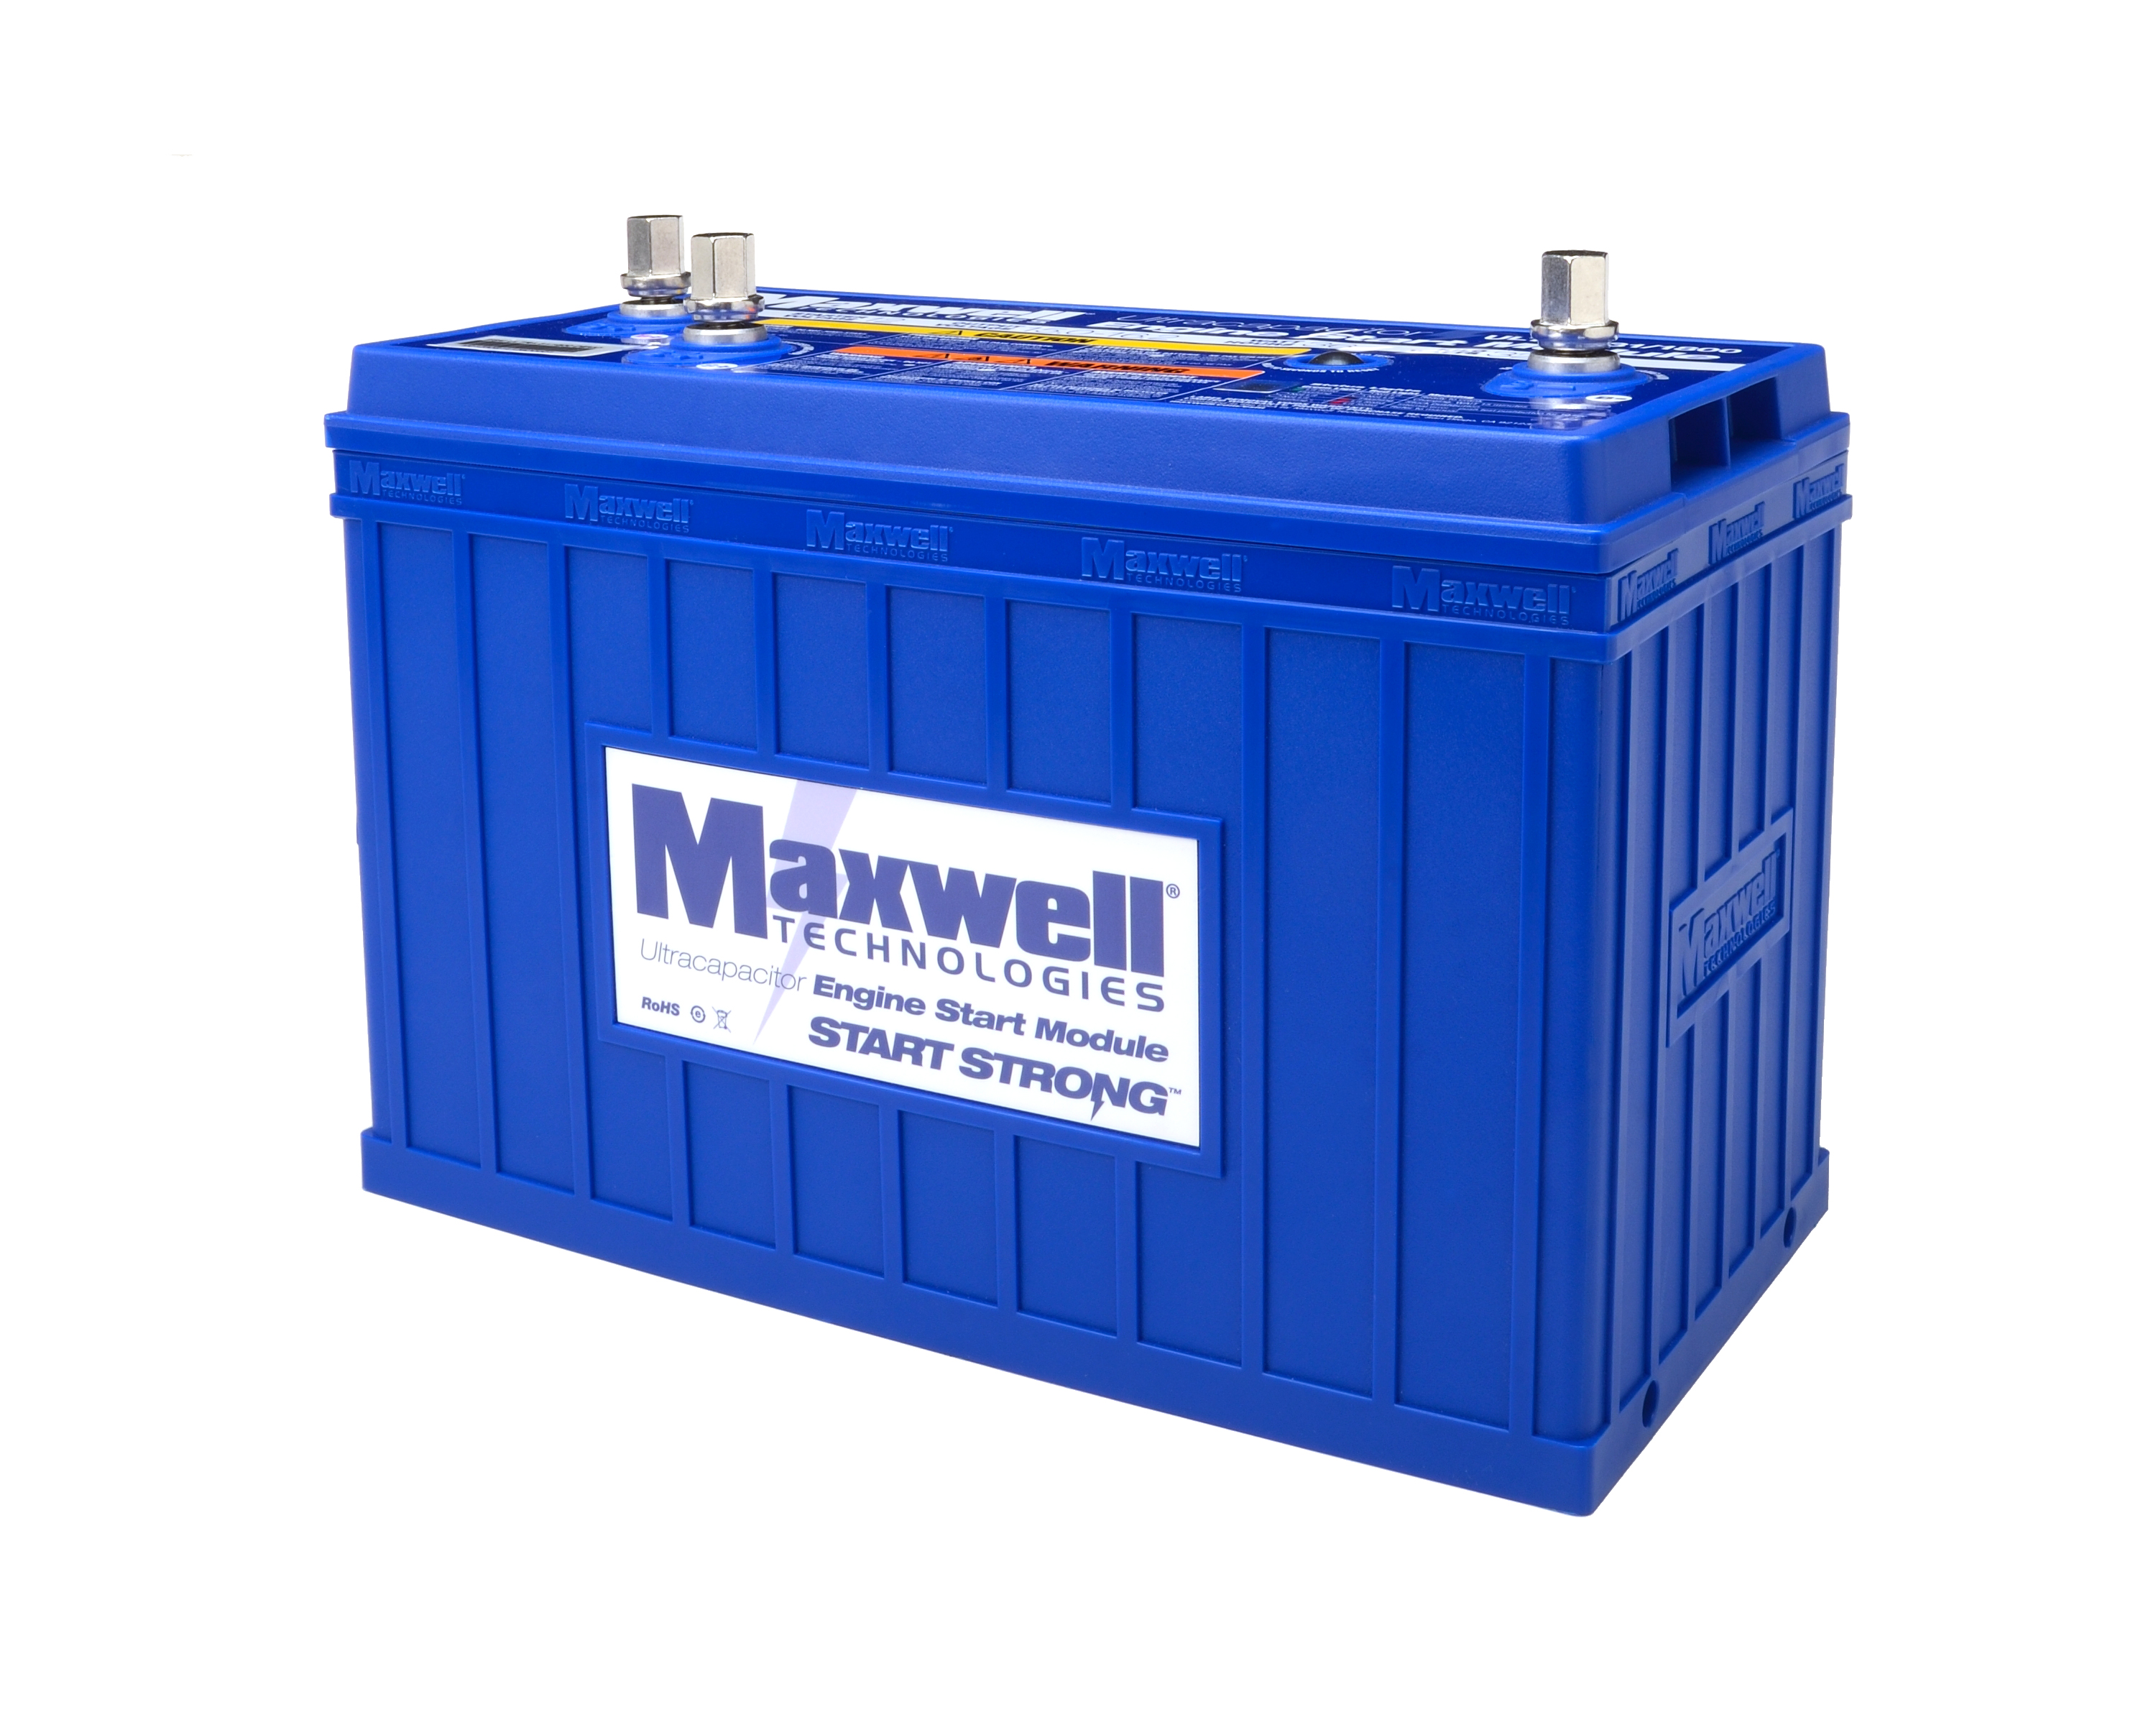 KW Offers Maxwell Engine Start Module - Products - Trucking Info